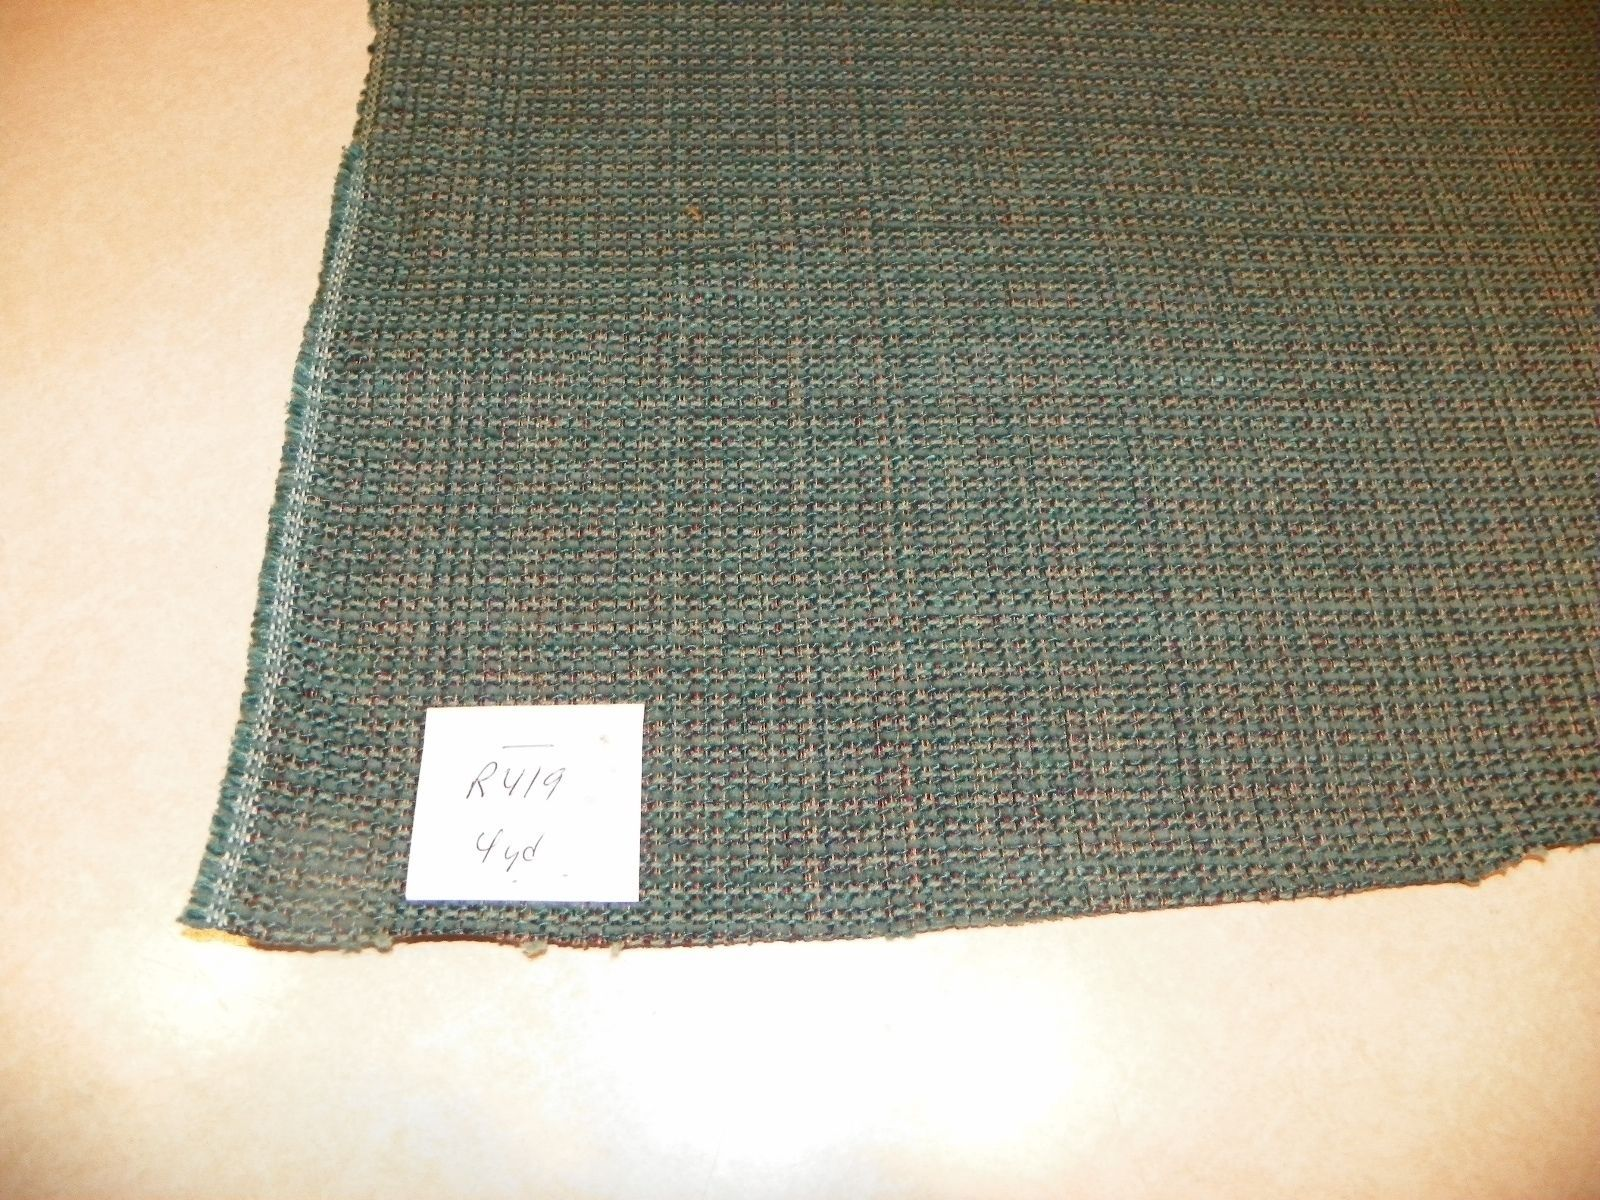 Blue Green Nylon Tweed Upholstery Fabric 1 And 50 Similar Items